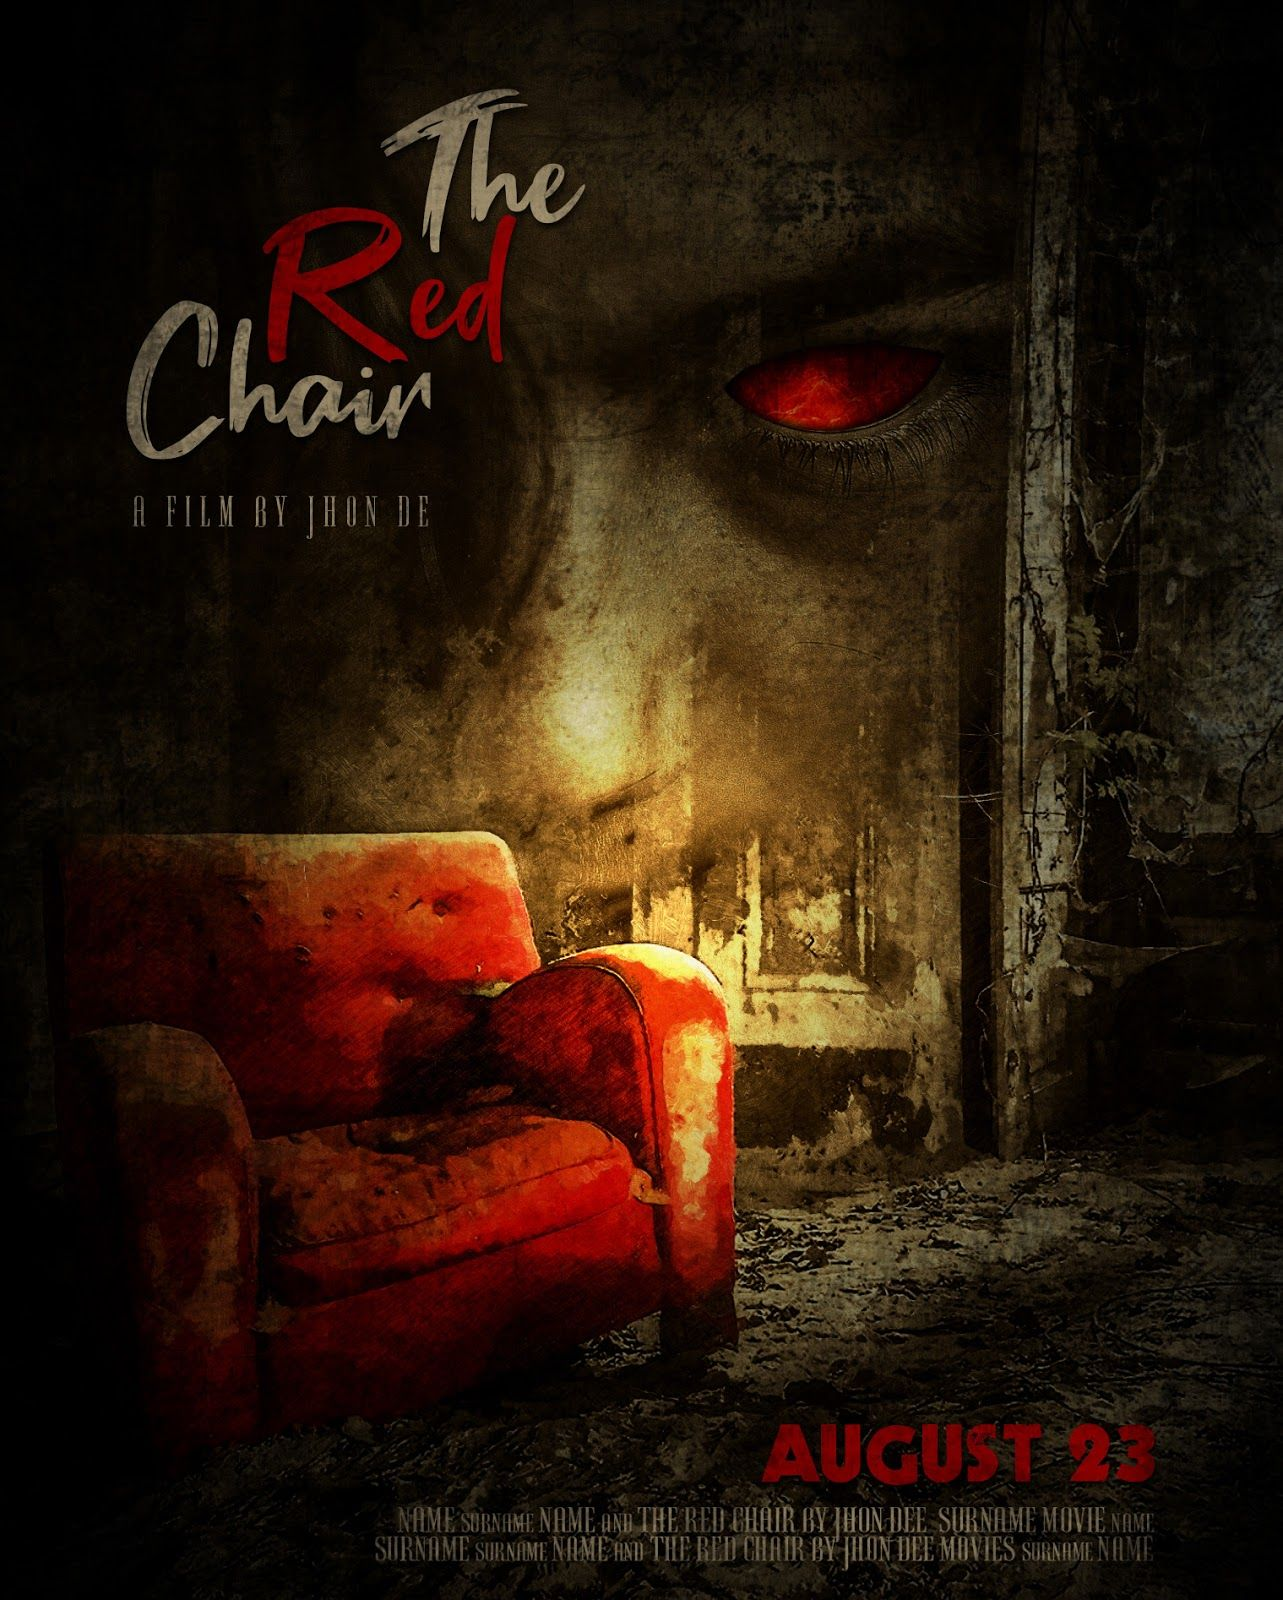 Design A Scary Horror Movie Poster In Photoshop Cc Horror Movies Scariest Horror Movie Posters Photoshop